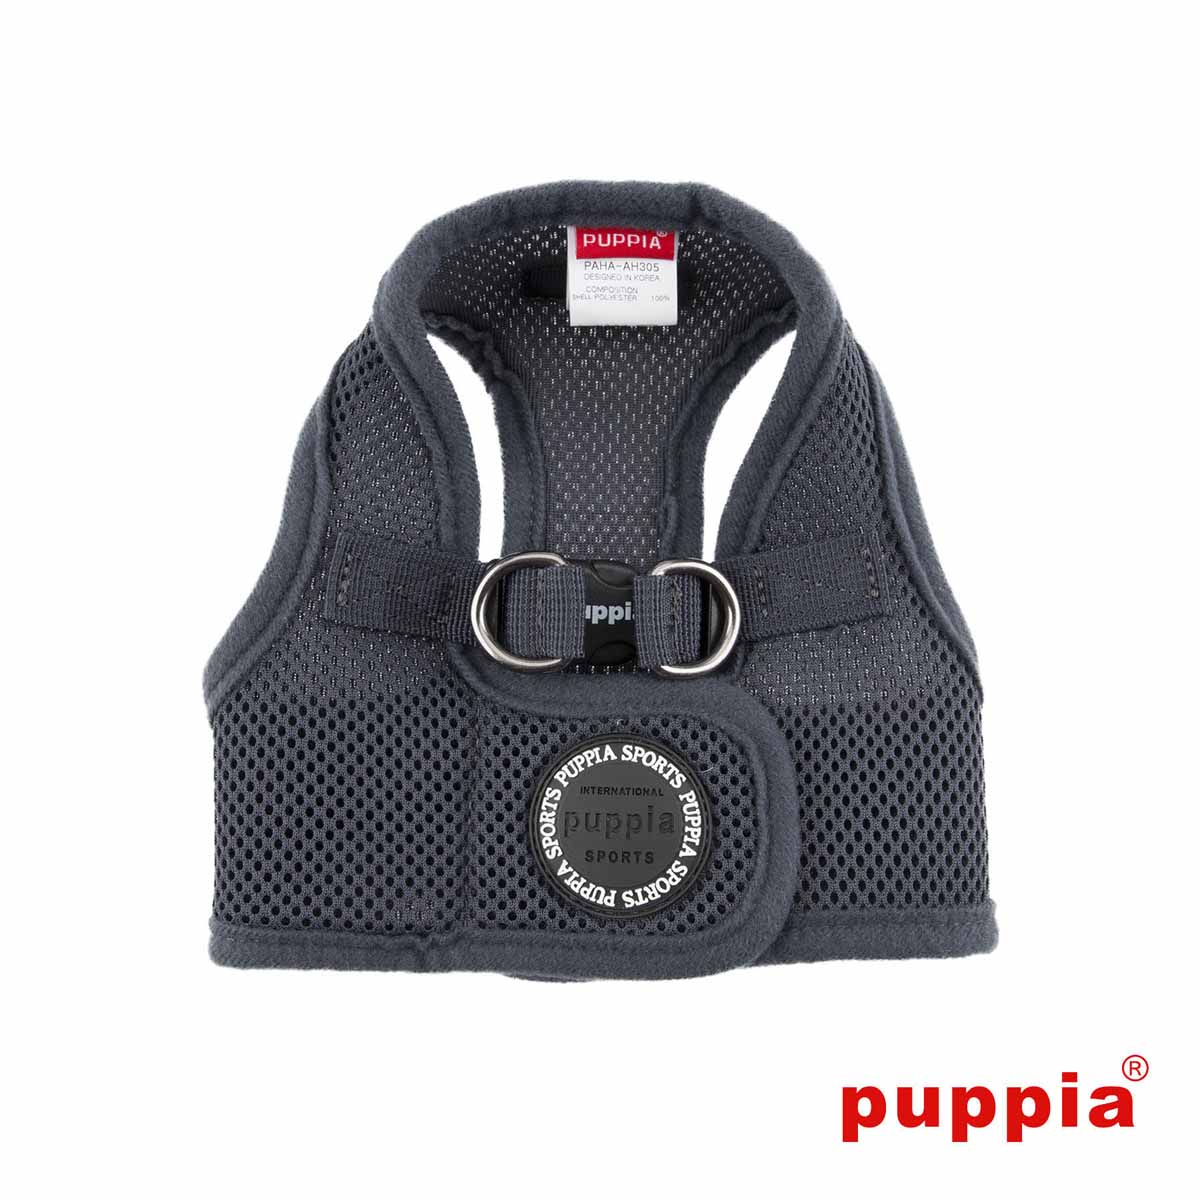 Mesh Soft Harness Vest by Puppia - Grey